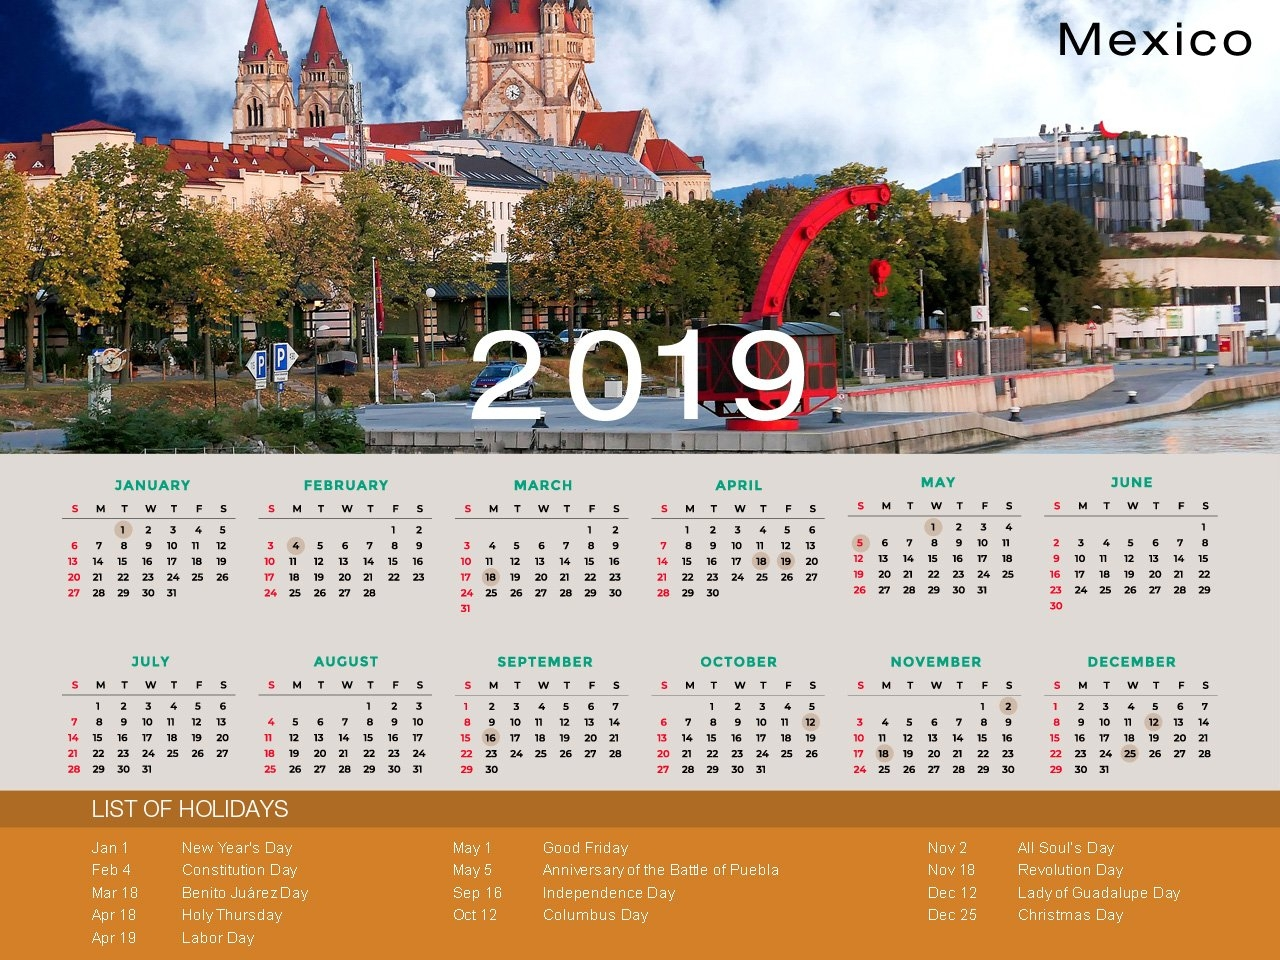 Mexico Holiday Calendar 2019 Calendar 2019 Mexico